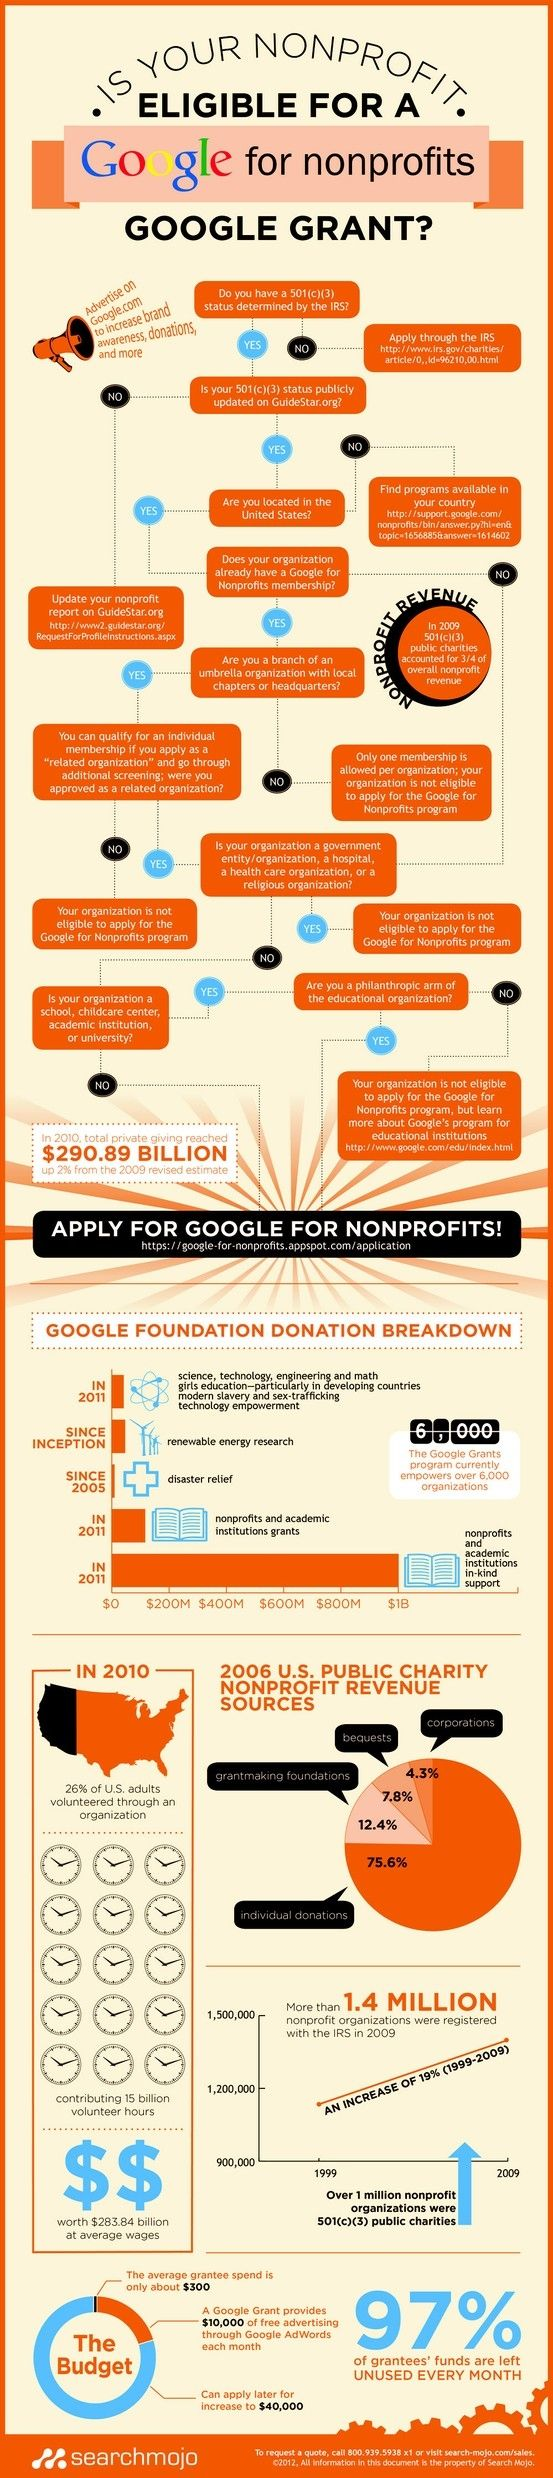 517 best fundraising images on pinterest | auction ideas